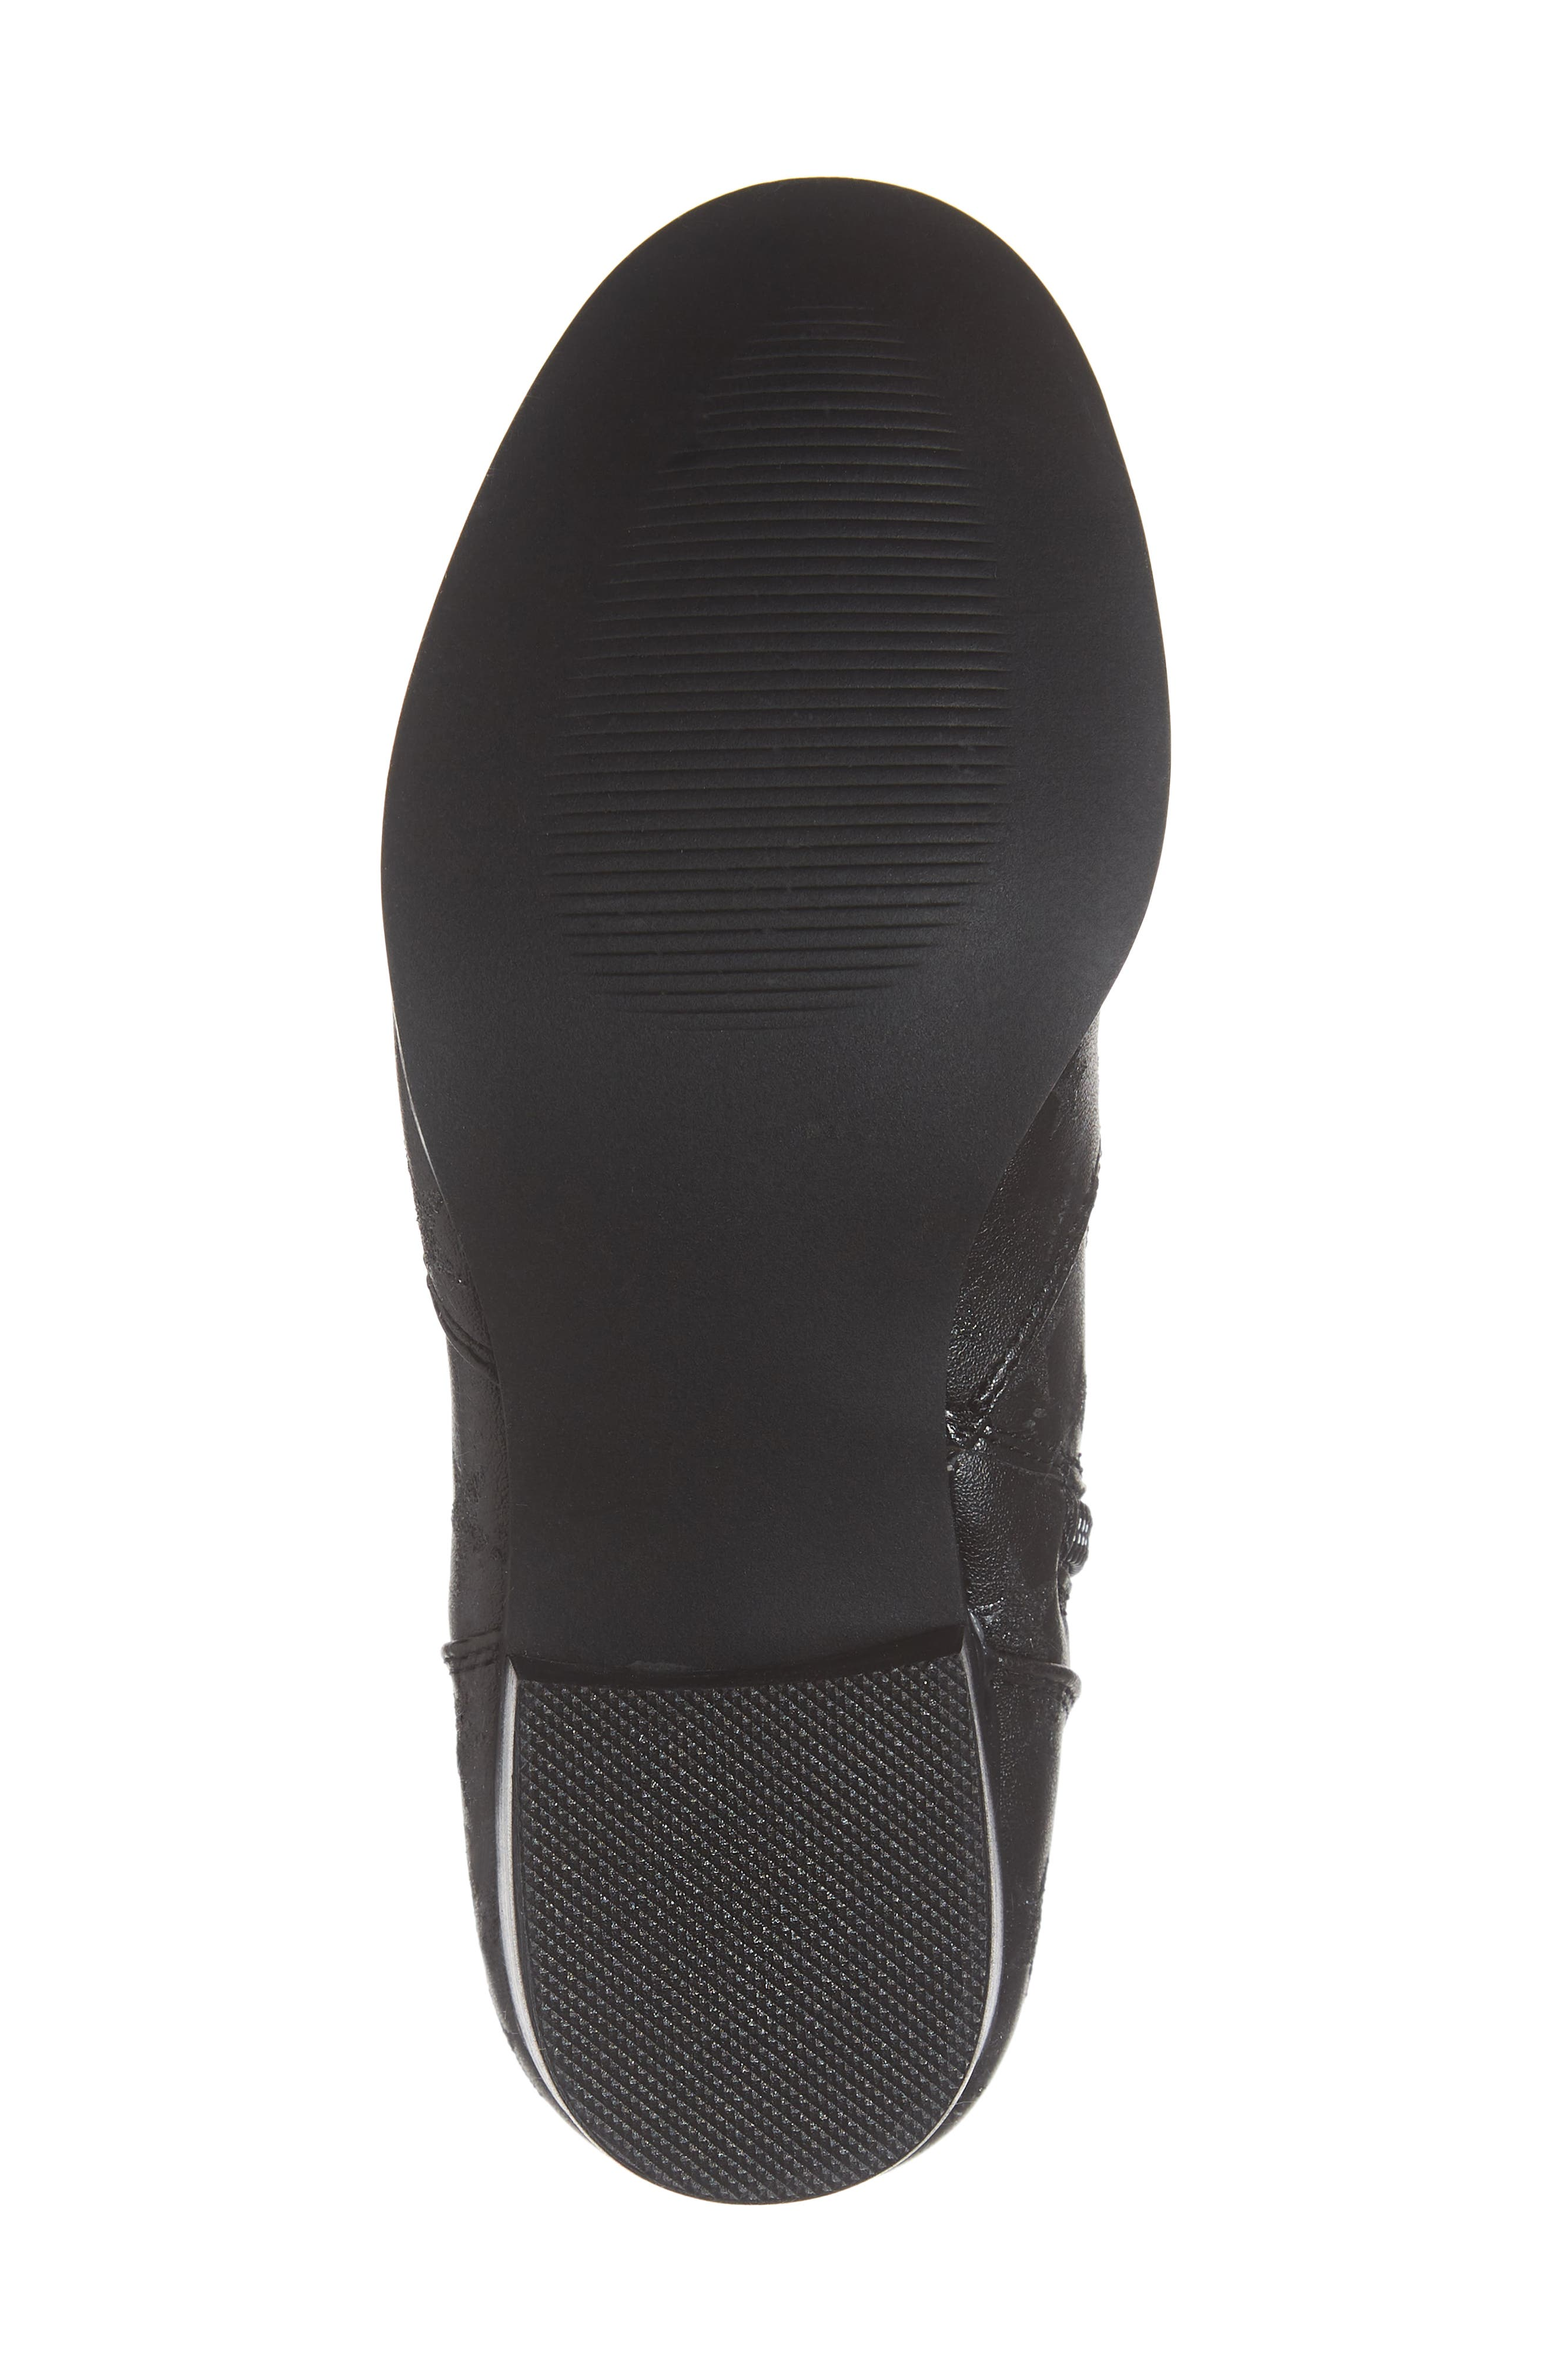 JCountry Slouch Bootie,                             Alternate thumbnail 6, color,                             BLACK